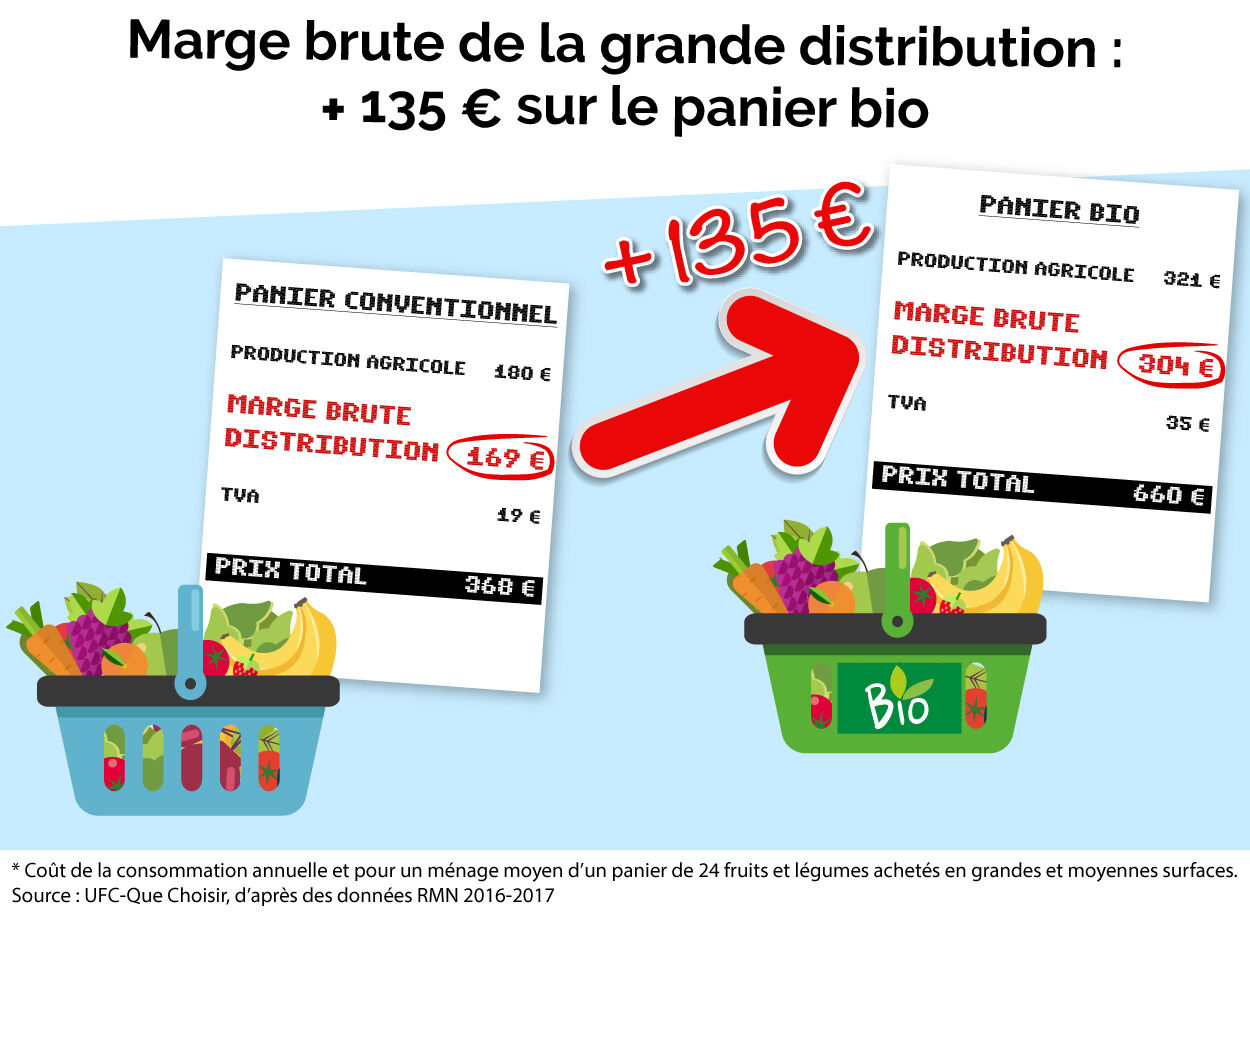 Marge brute de la grande distribution